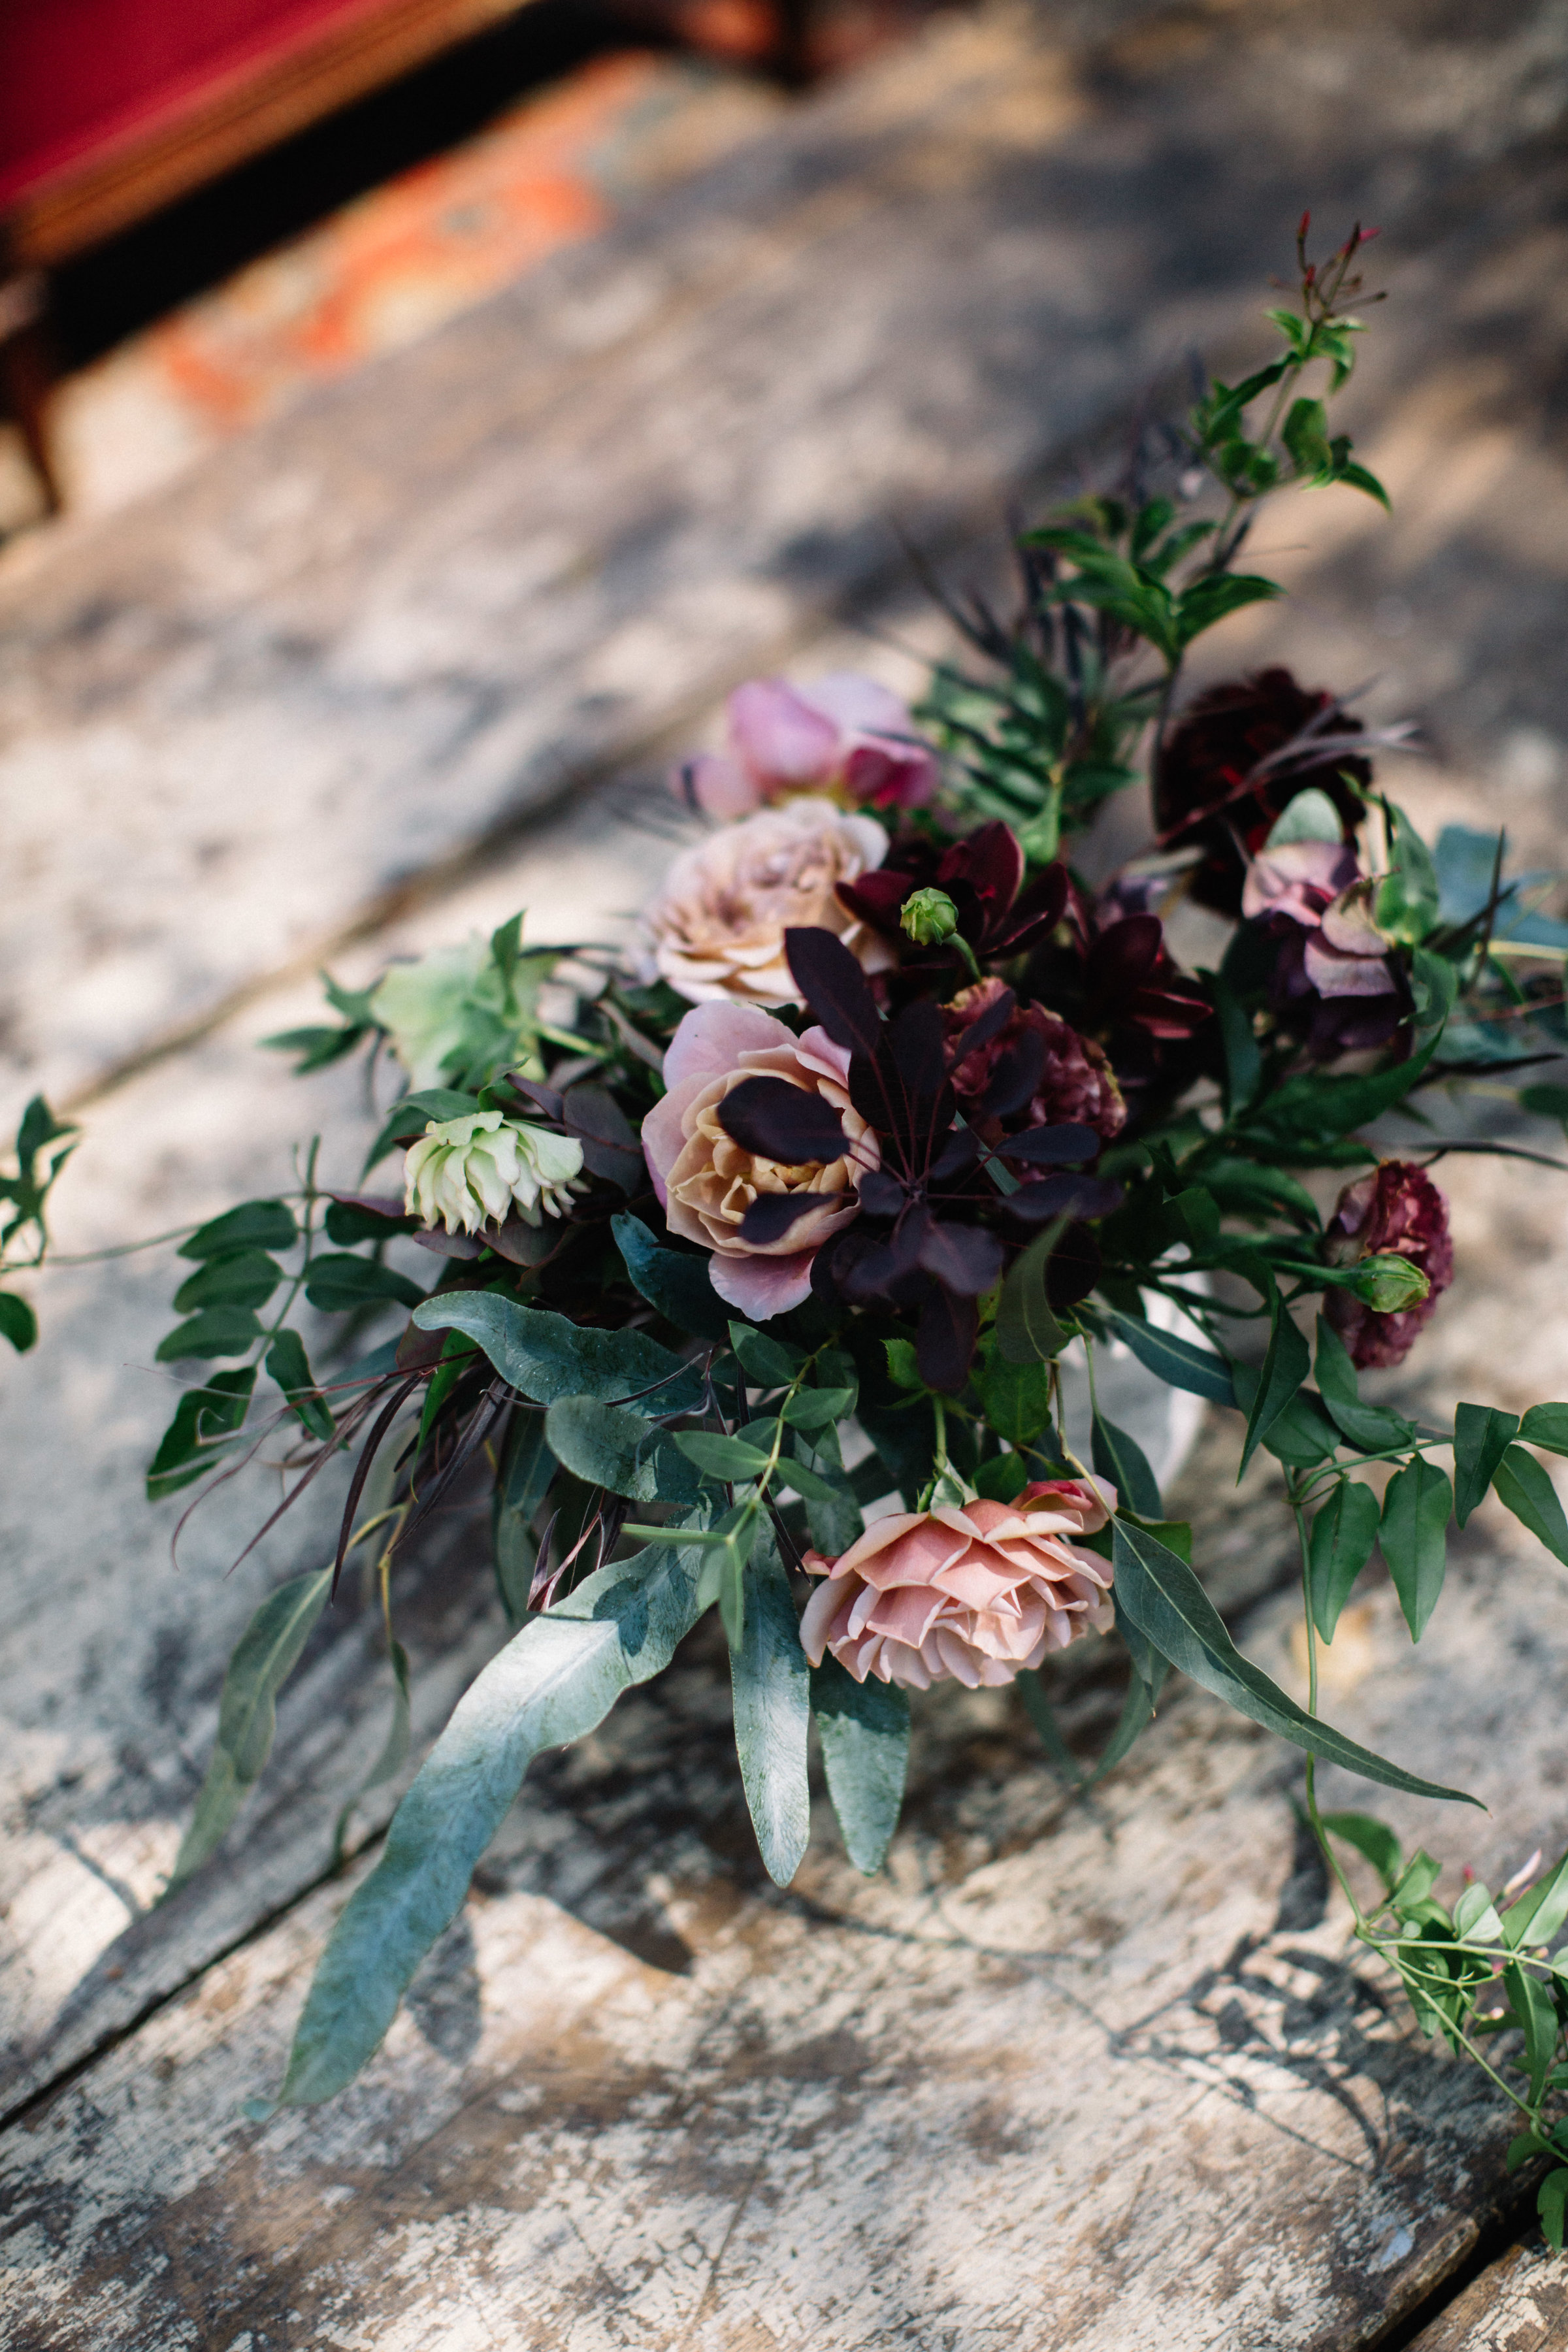 Sonoma Coast wedding flowers with Distant Drums Garden Roses, Hellebores, Blue Star Ferns, Orchids, Jasmine Vine and more by Venn Floral photographed by Lucille Lawrence in Northern California at Straus Home Ranch wedding venue.